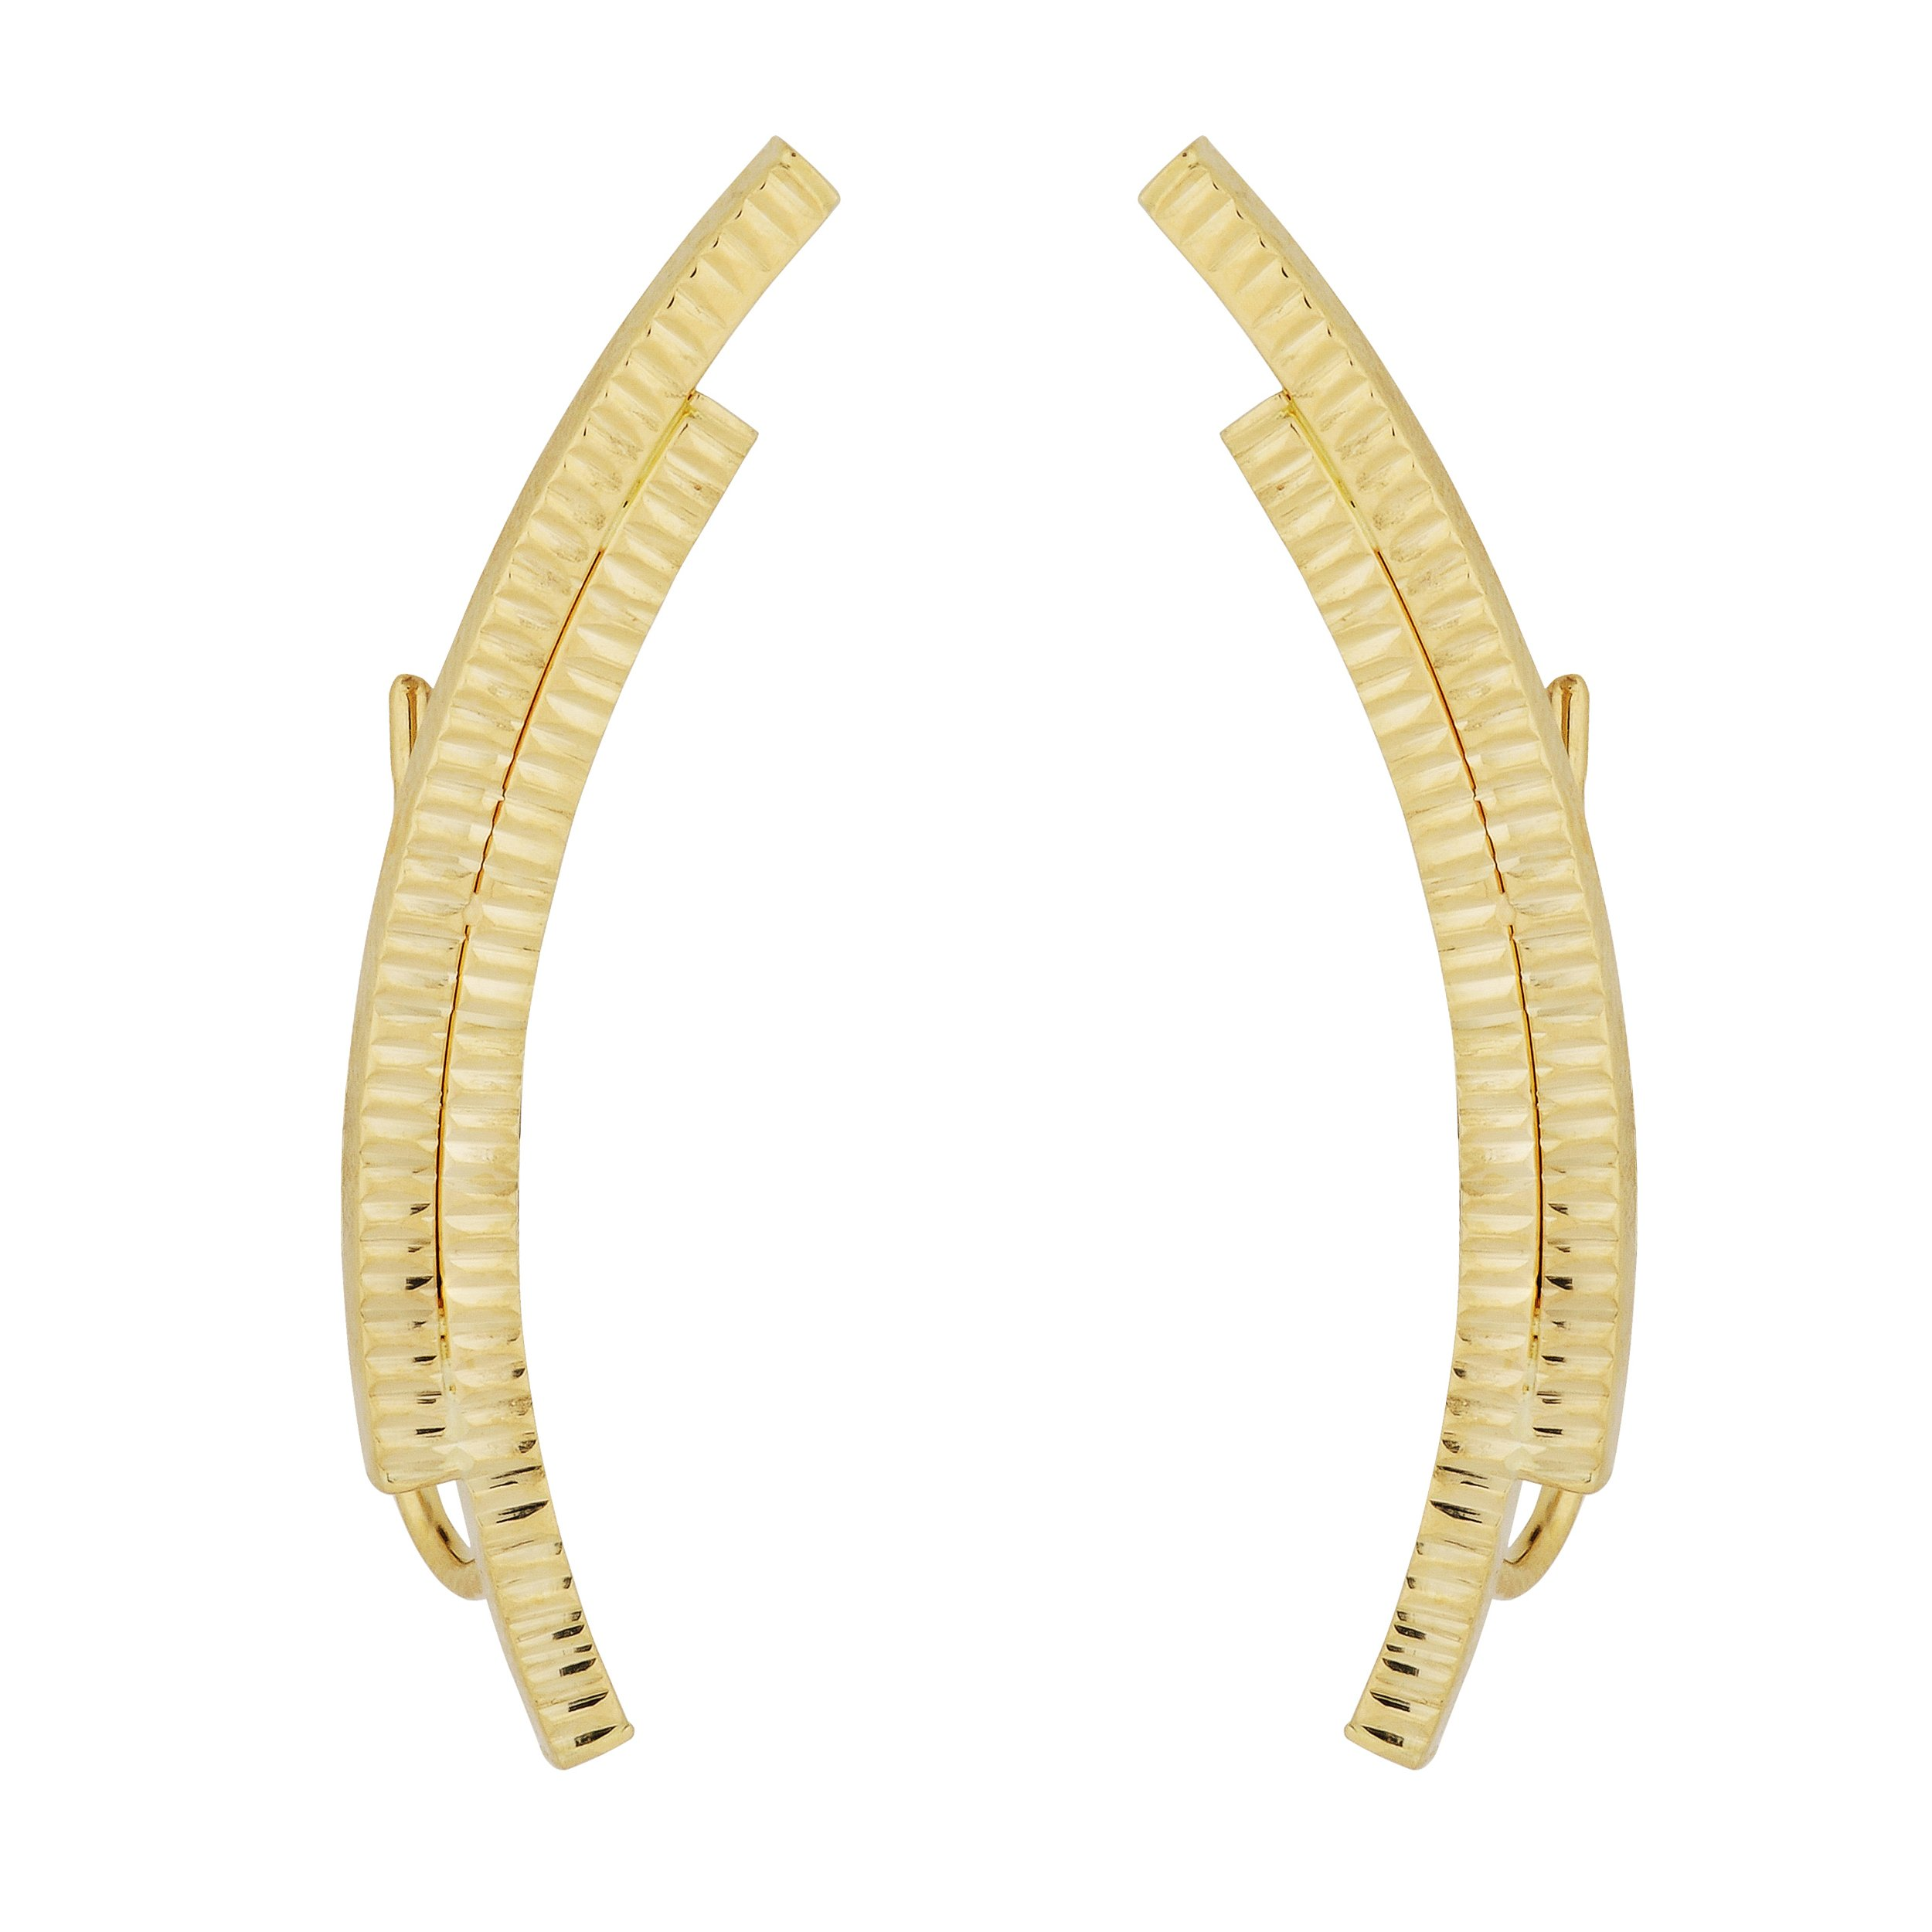 14k Yellow Gold Double Curved Bar Climber Earrings